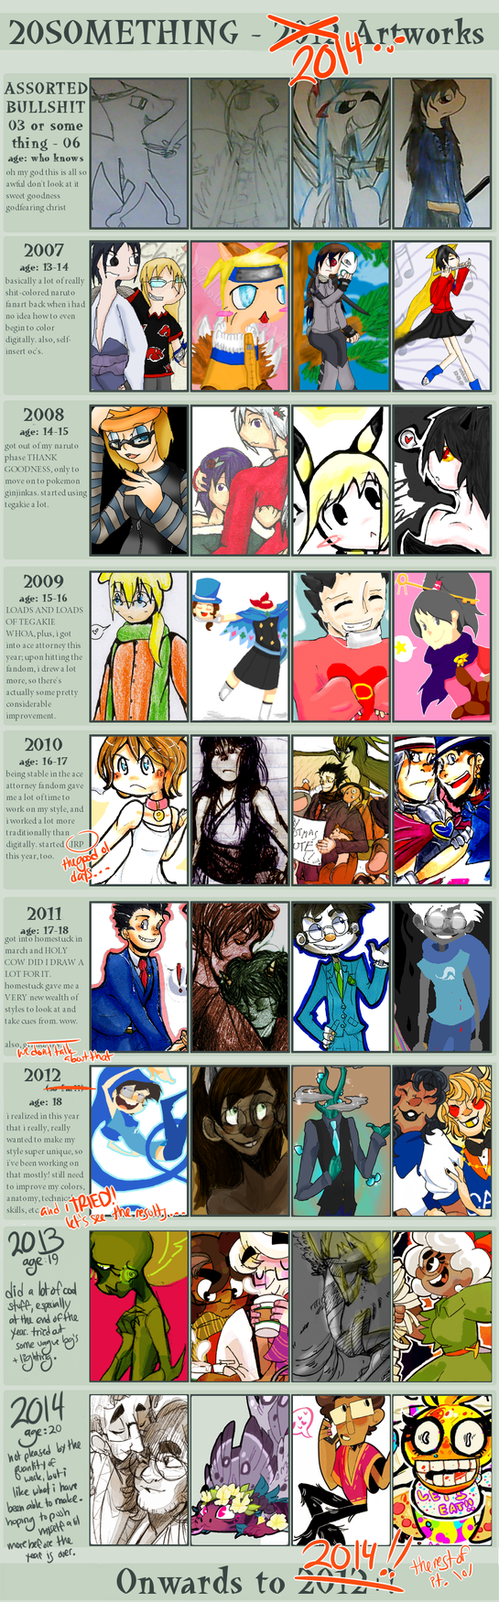 improvement meme 20something - 2014 [UPDATED] by crovvn